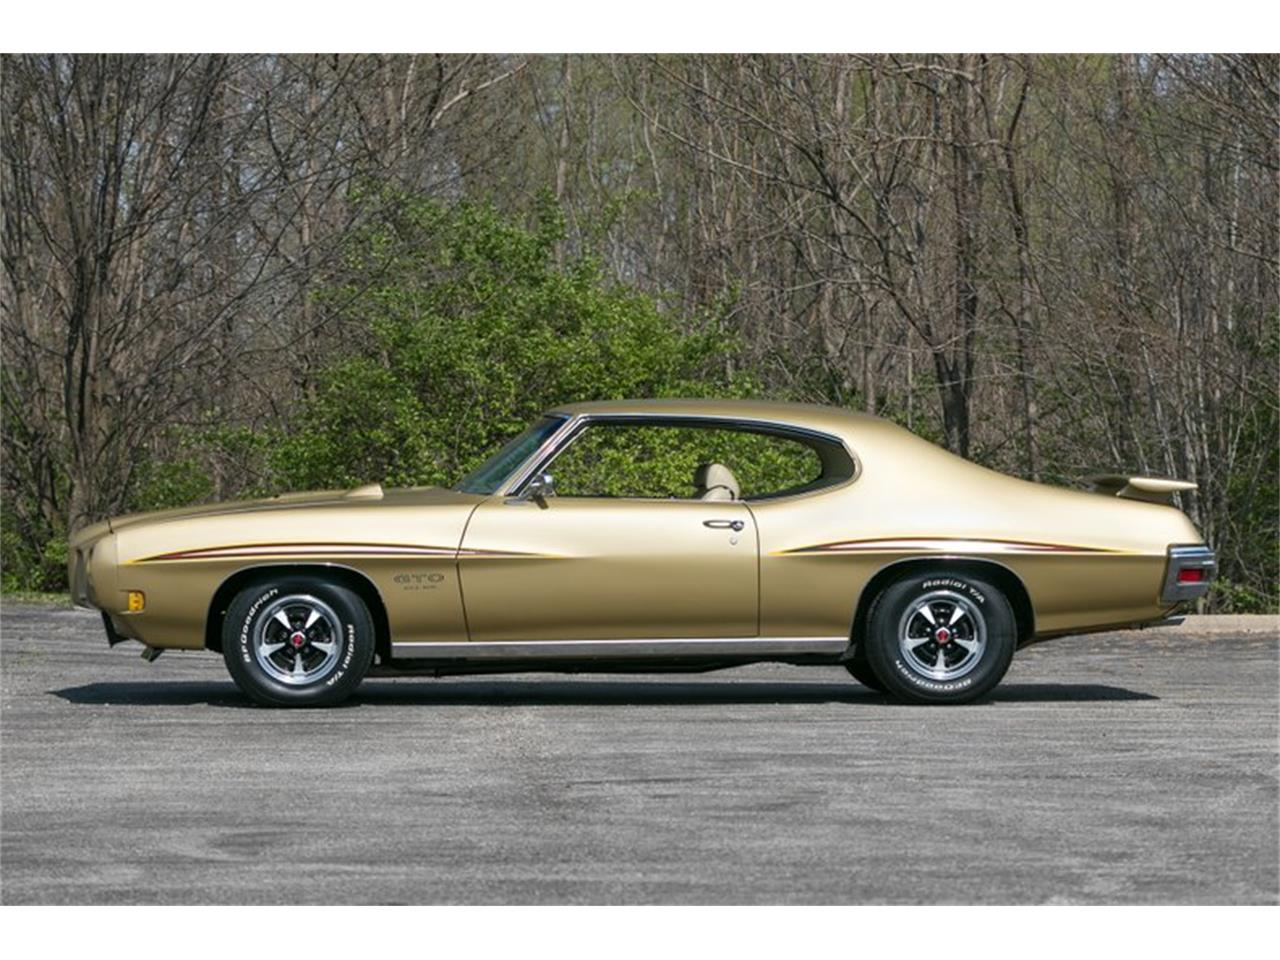 Large Picture of 1970 GTO located in St. Charles Missouri - $59,995.00 Offered by Fast Lane Classic Cars Inc. - QKPX